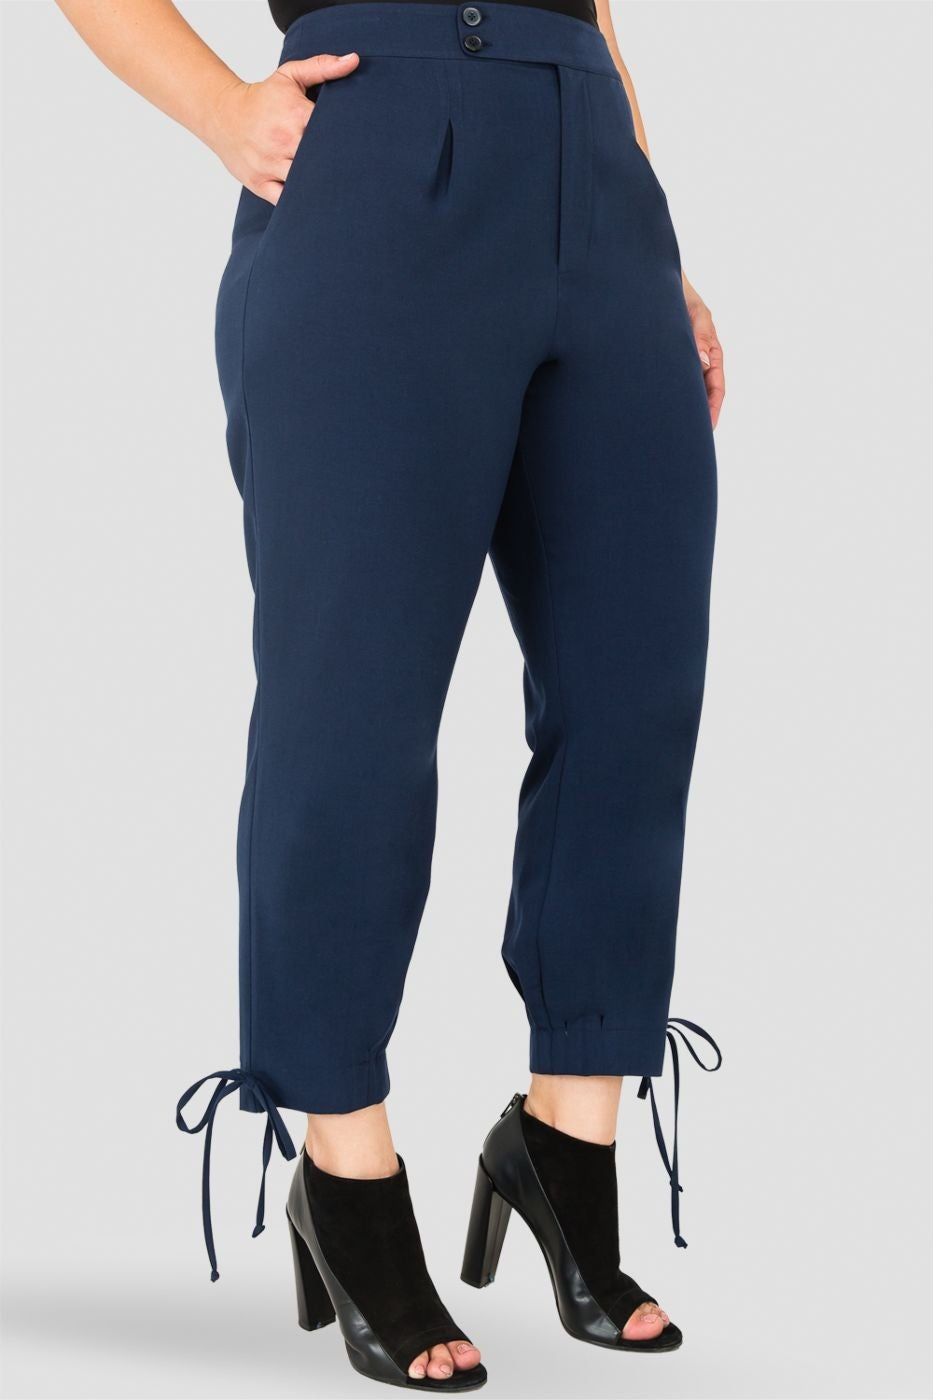 CoEdition pants